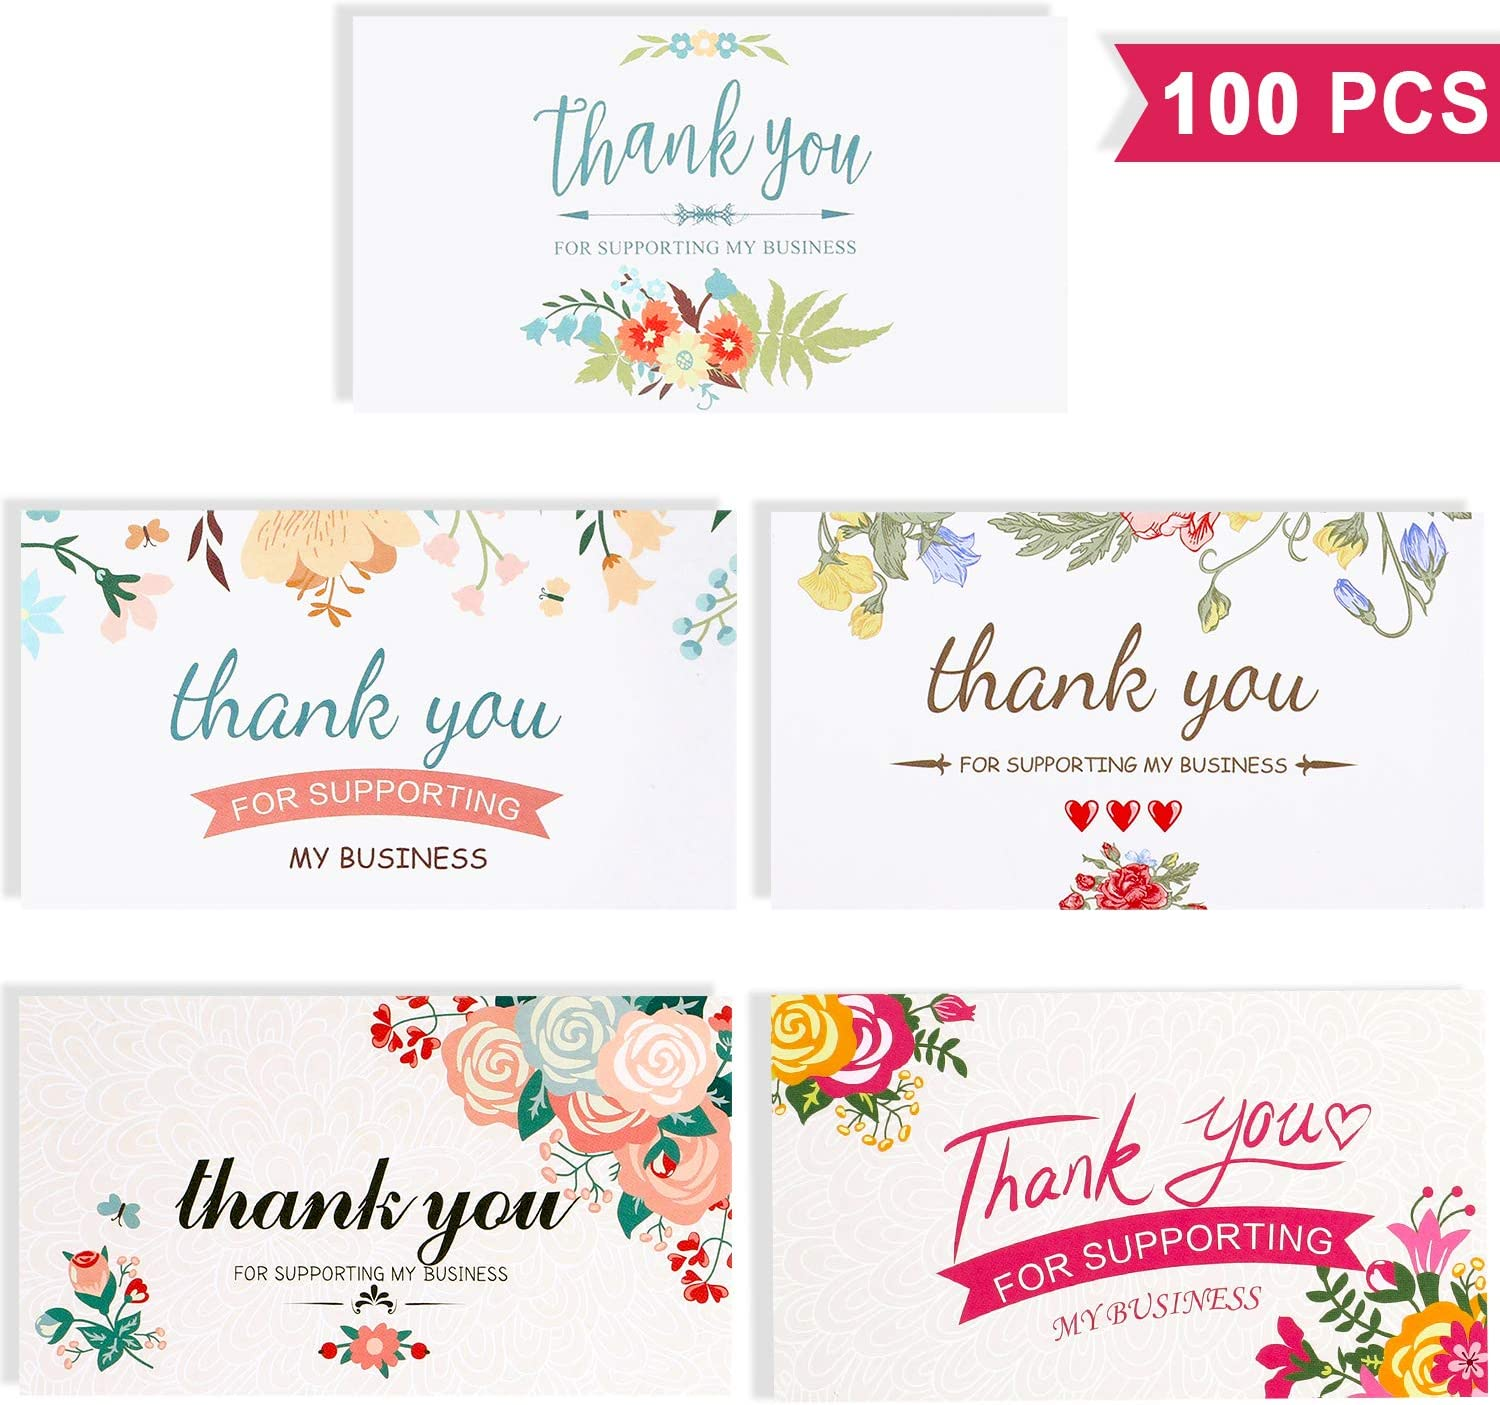 ghdonat.com 100 Pieces Thank You for Supporting My Business Cards ...